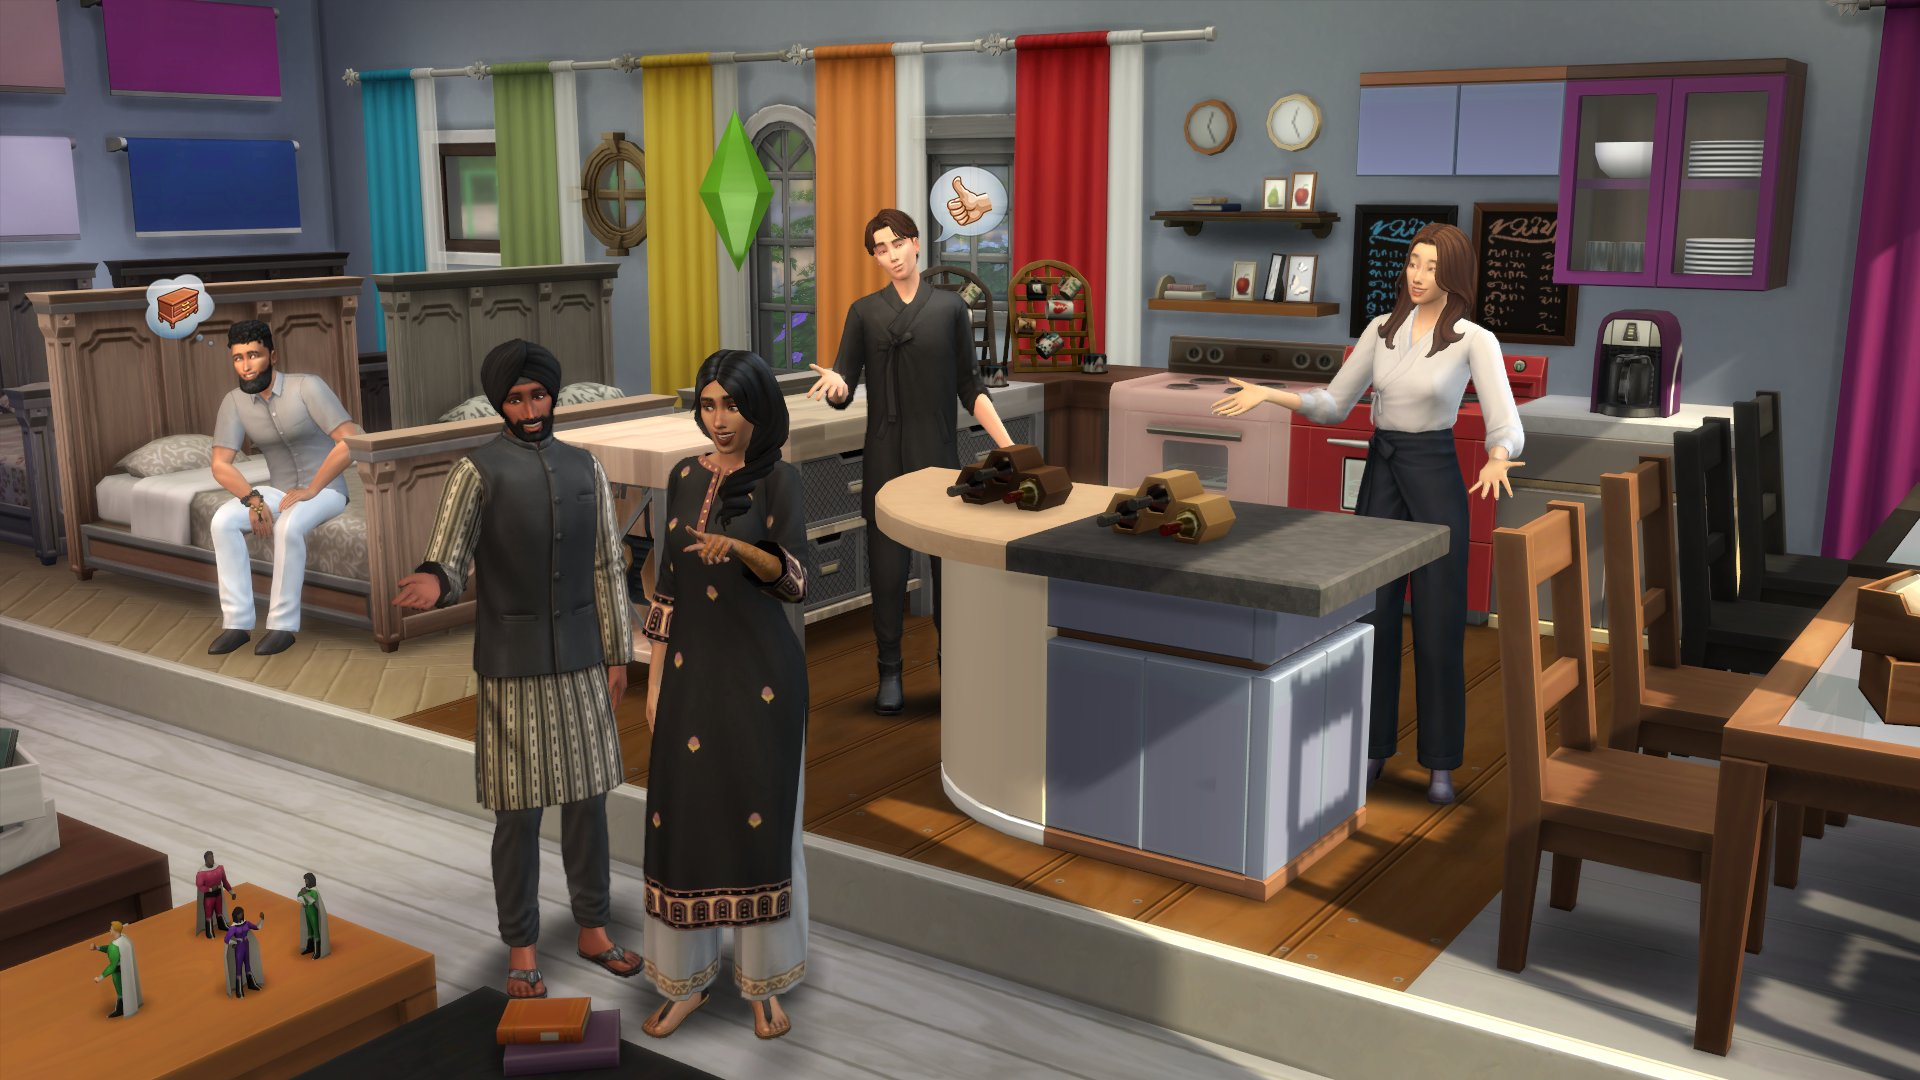 The Sims 4 gets over 1,000 new swatches in a free update